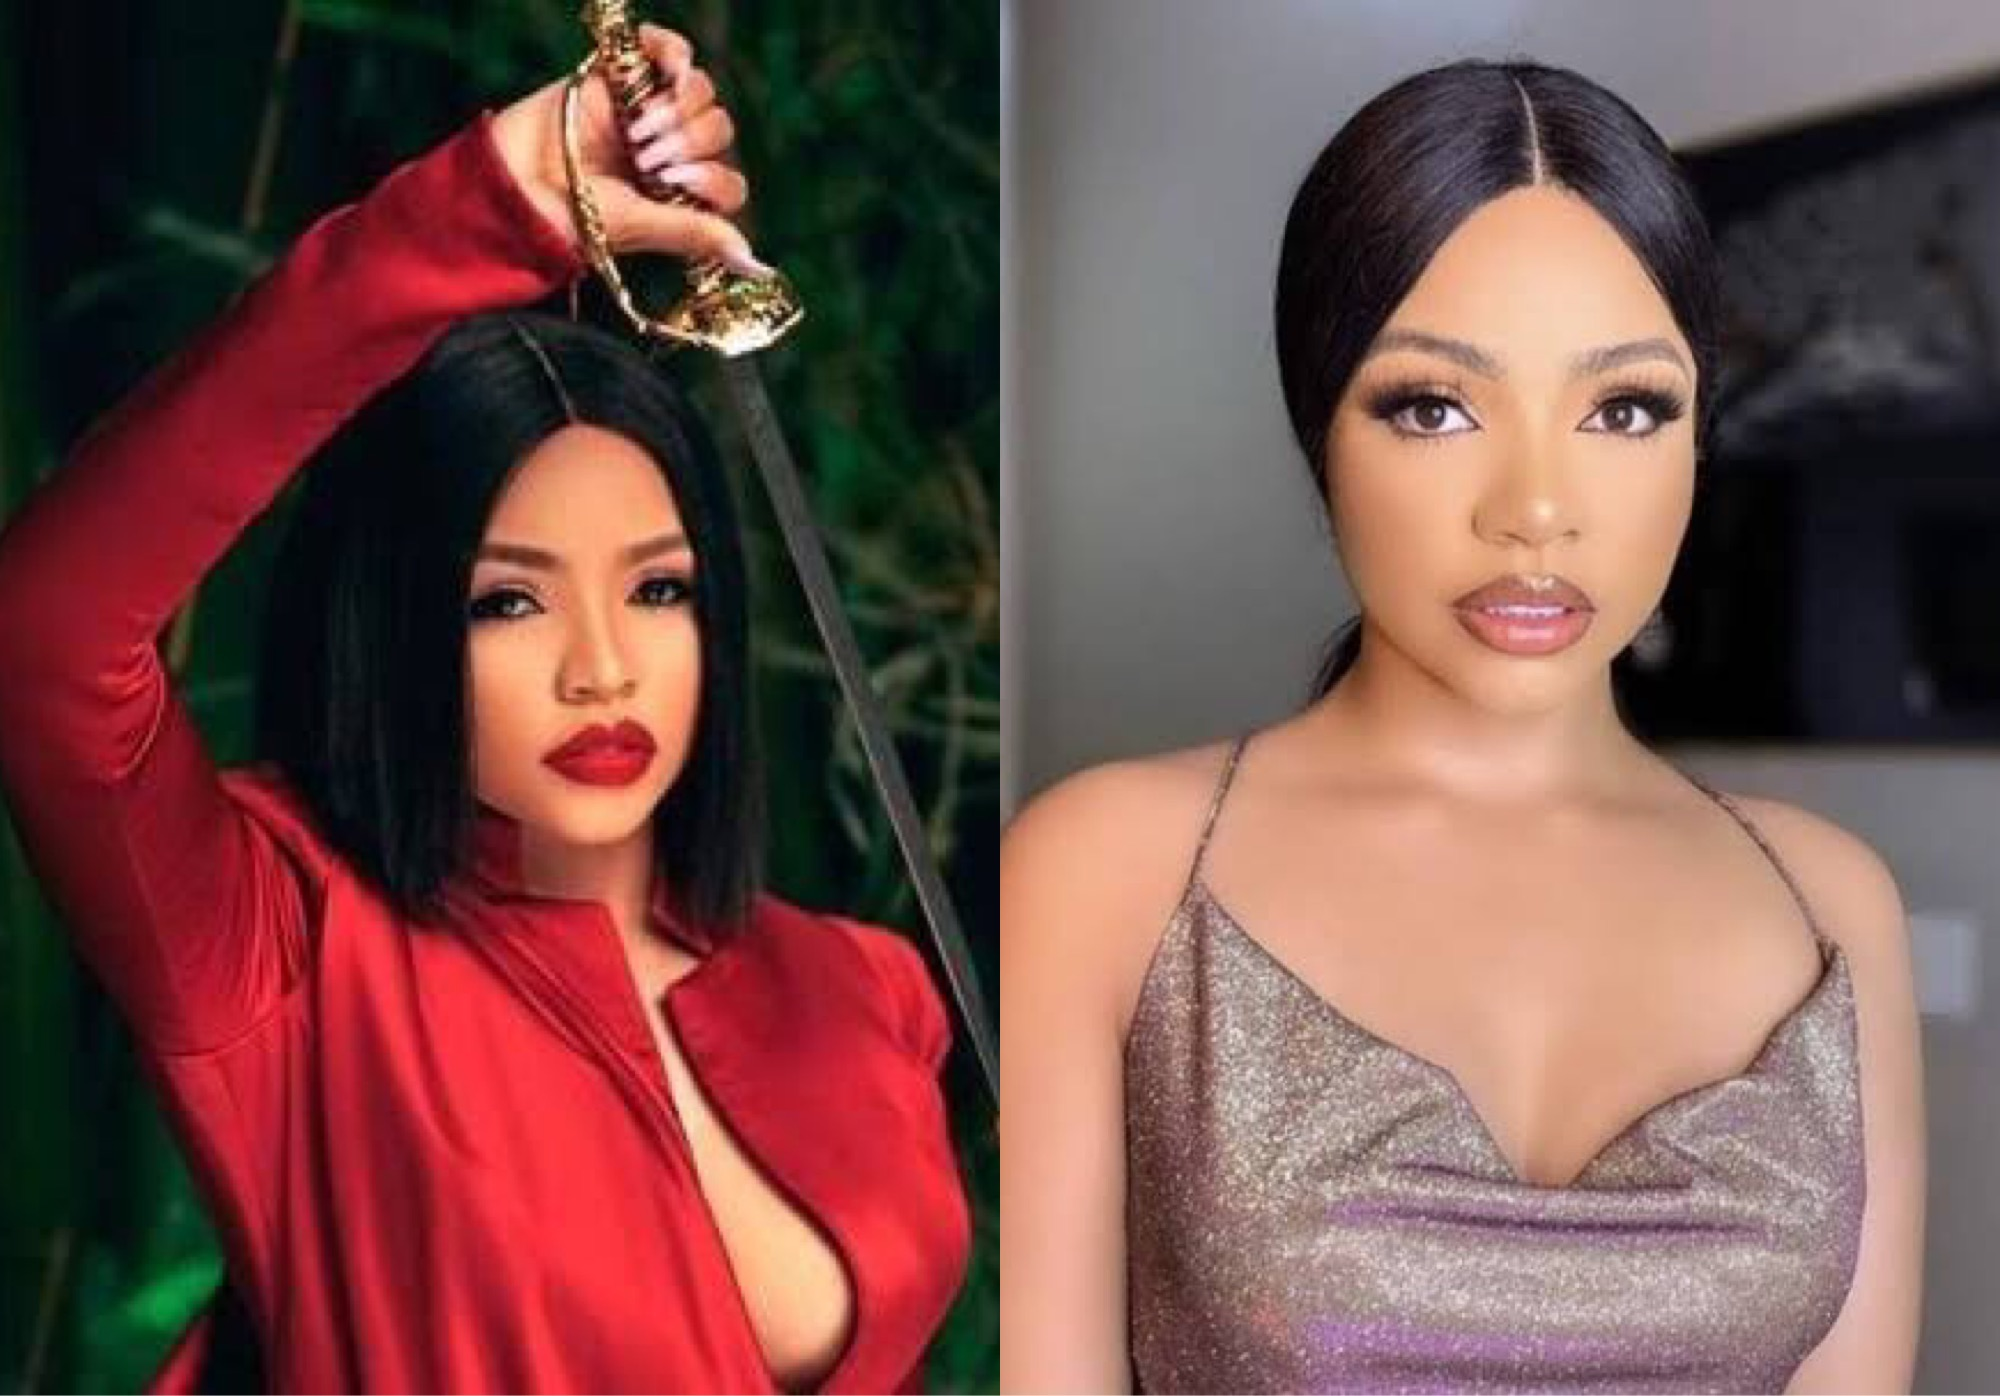 BBNaija's Nengi Celebrates 2 Million Instagram Followers With Stunning Photos